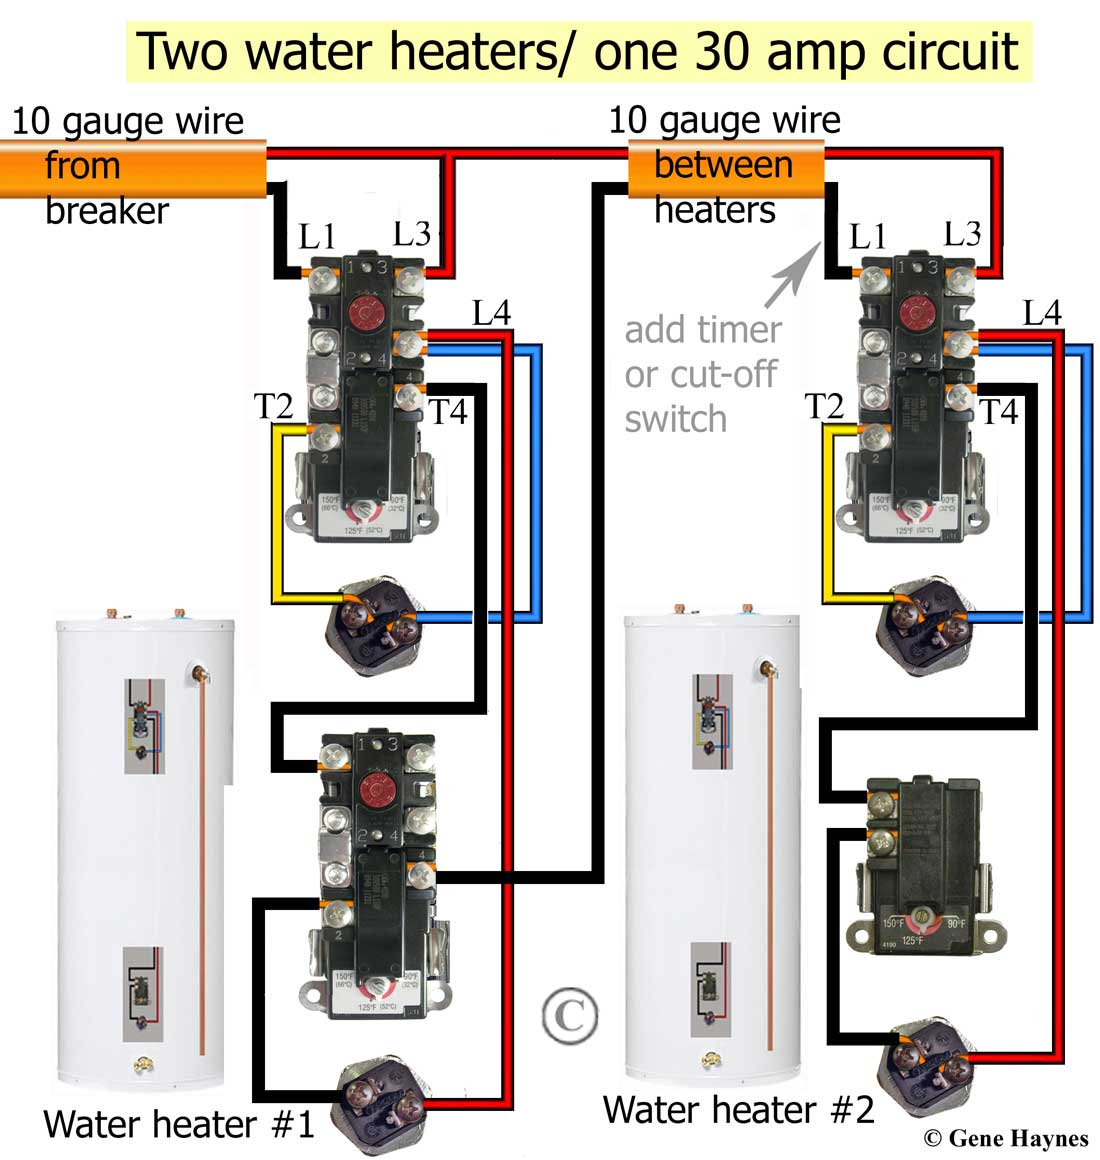 Whirlpool Water Heater Wiring - Schema Wiring Diagram - Hot Water Heater Wiring Diagram